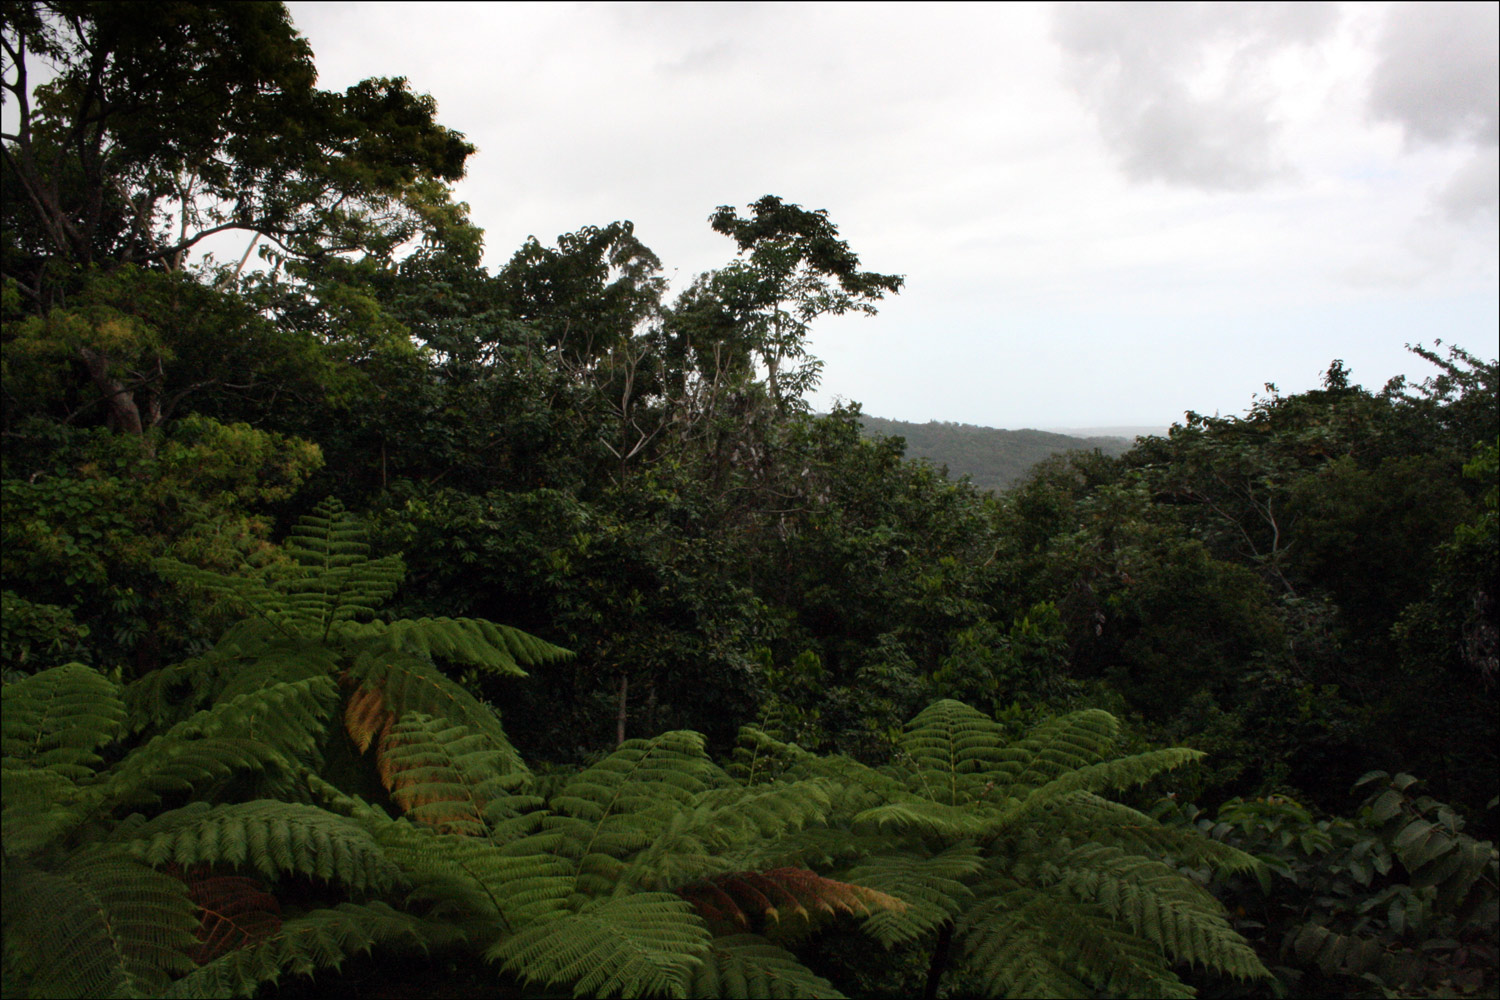 Vista of El Yunque Rainforest - 1